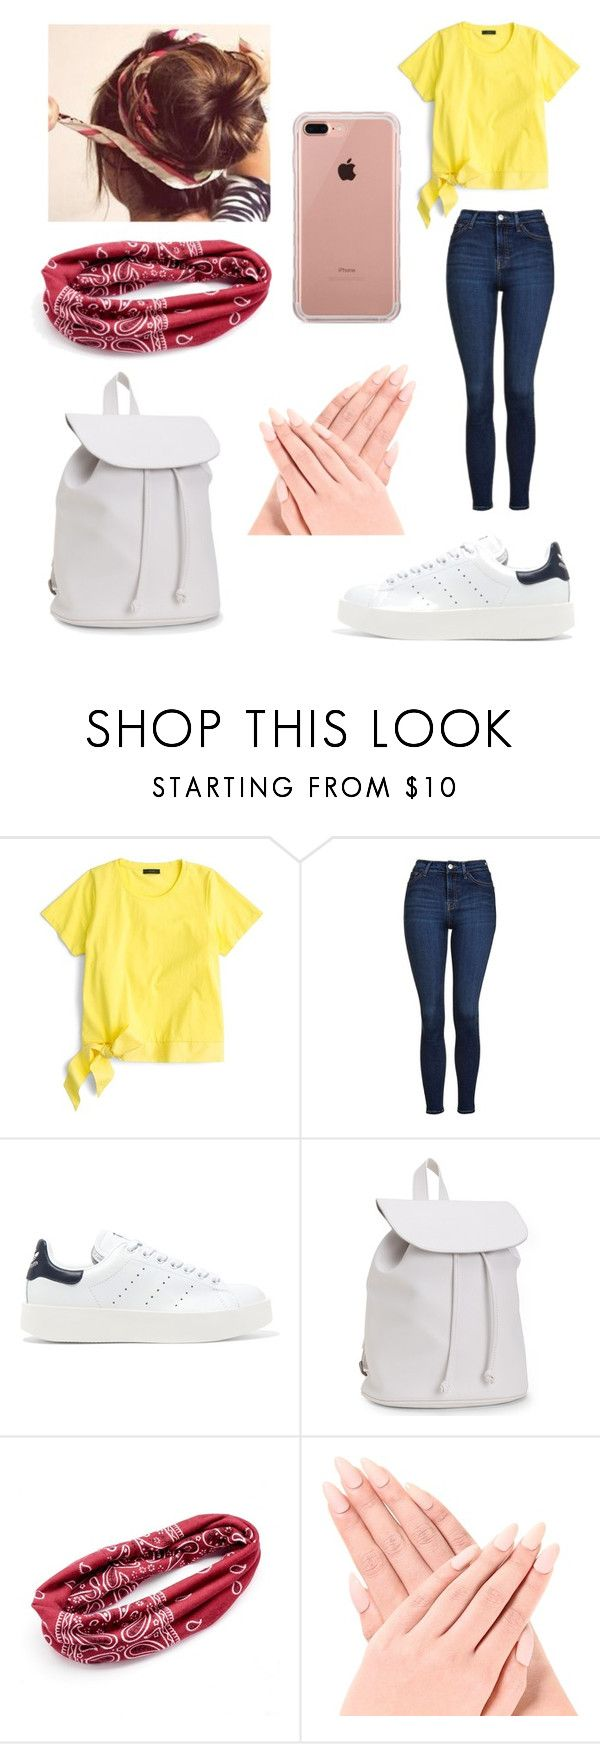 """-27-"" by khlooe ❤ liked on Polyvore featuring J.Crew, Topshop, adidas Originals, Aéropostale, Mudd and Belkin"